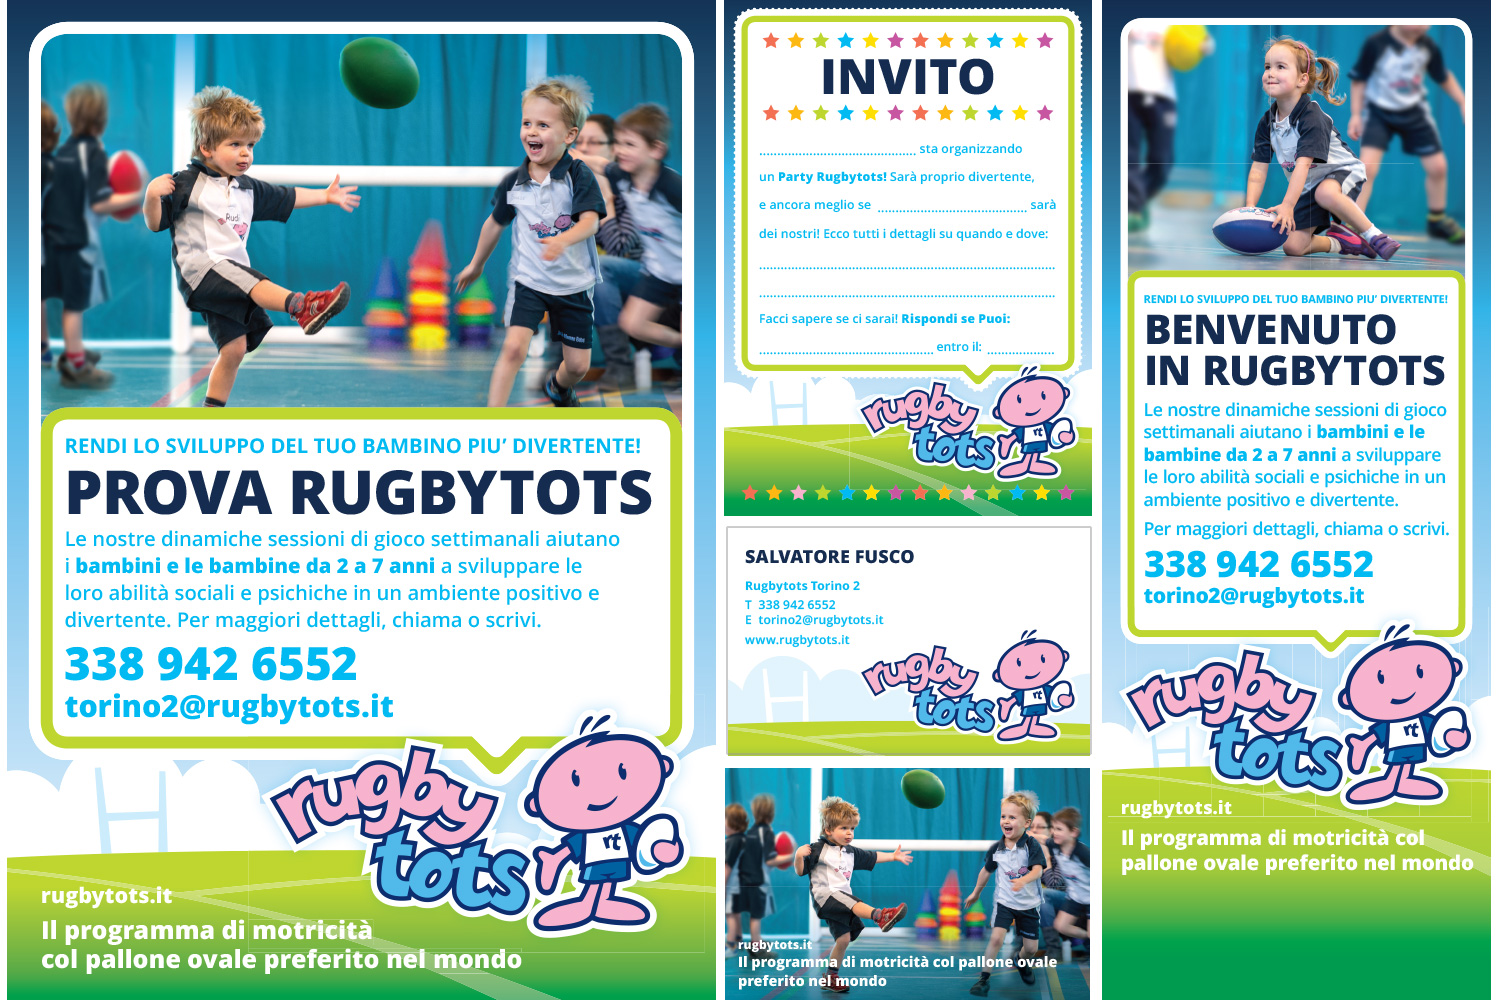 Rugbytots marketing materials in Italian